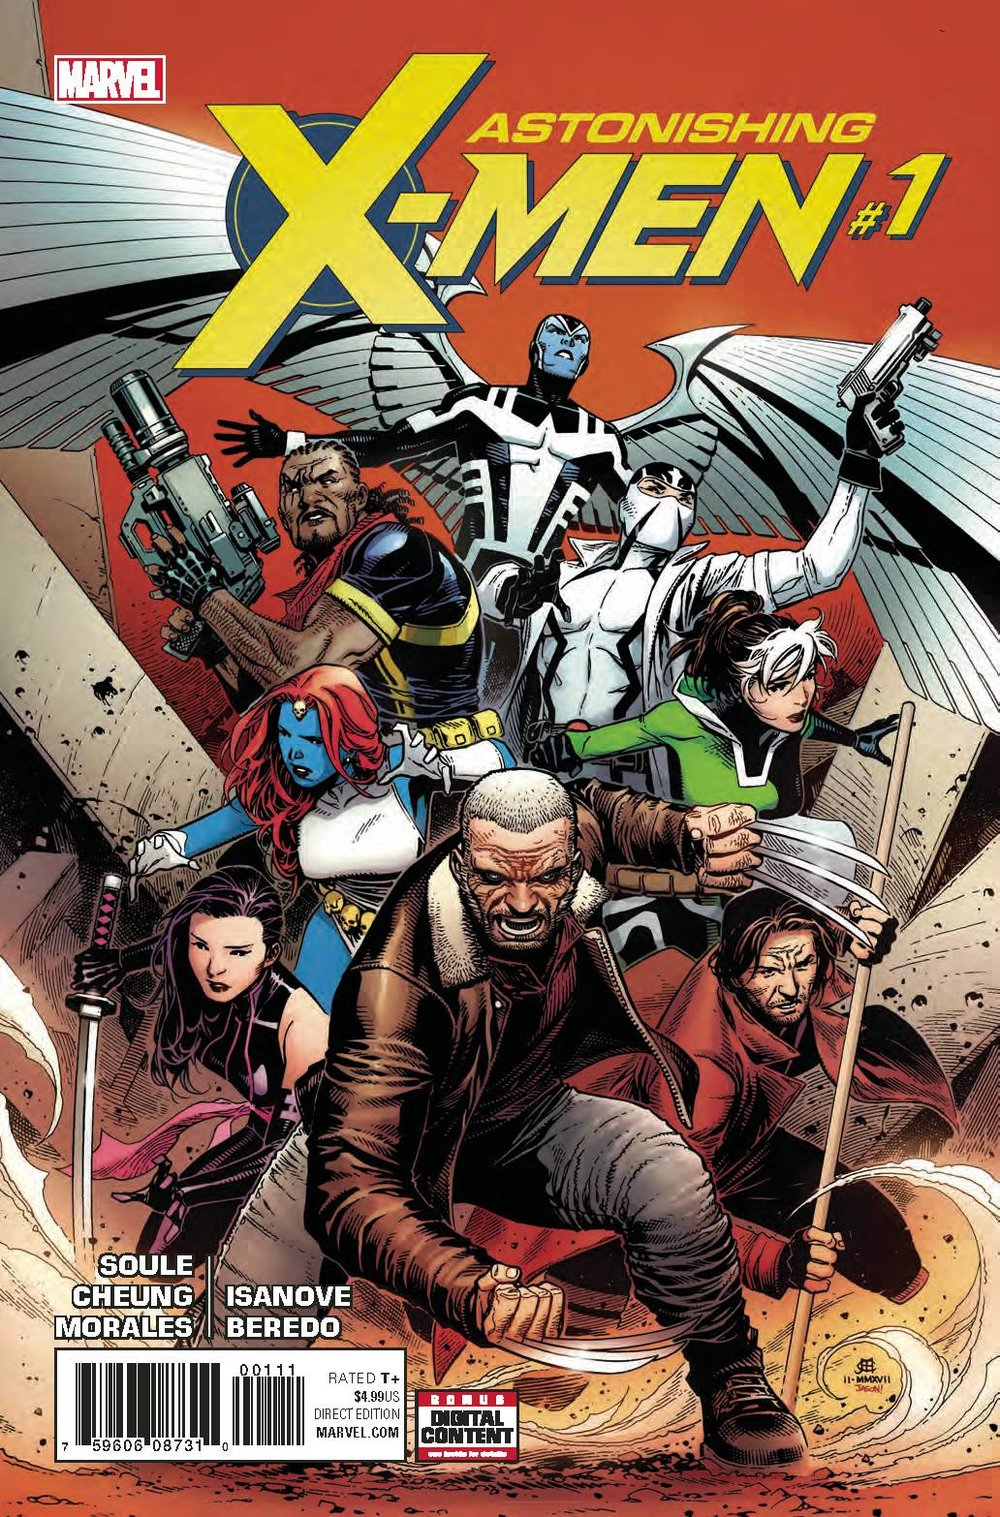 ASTONISHING X-MEN 1.jpg